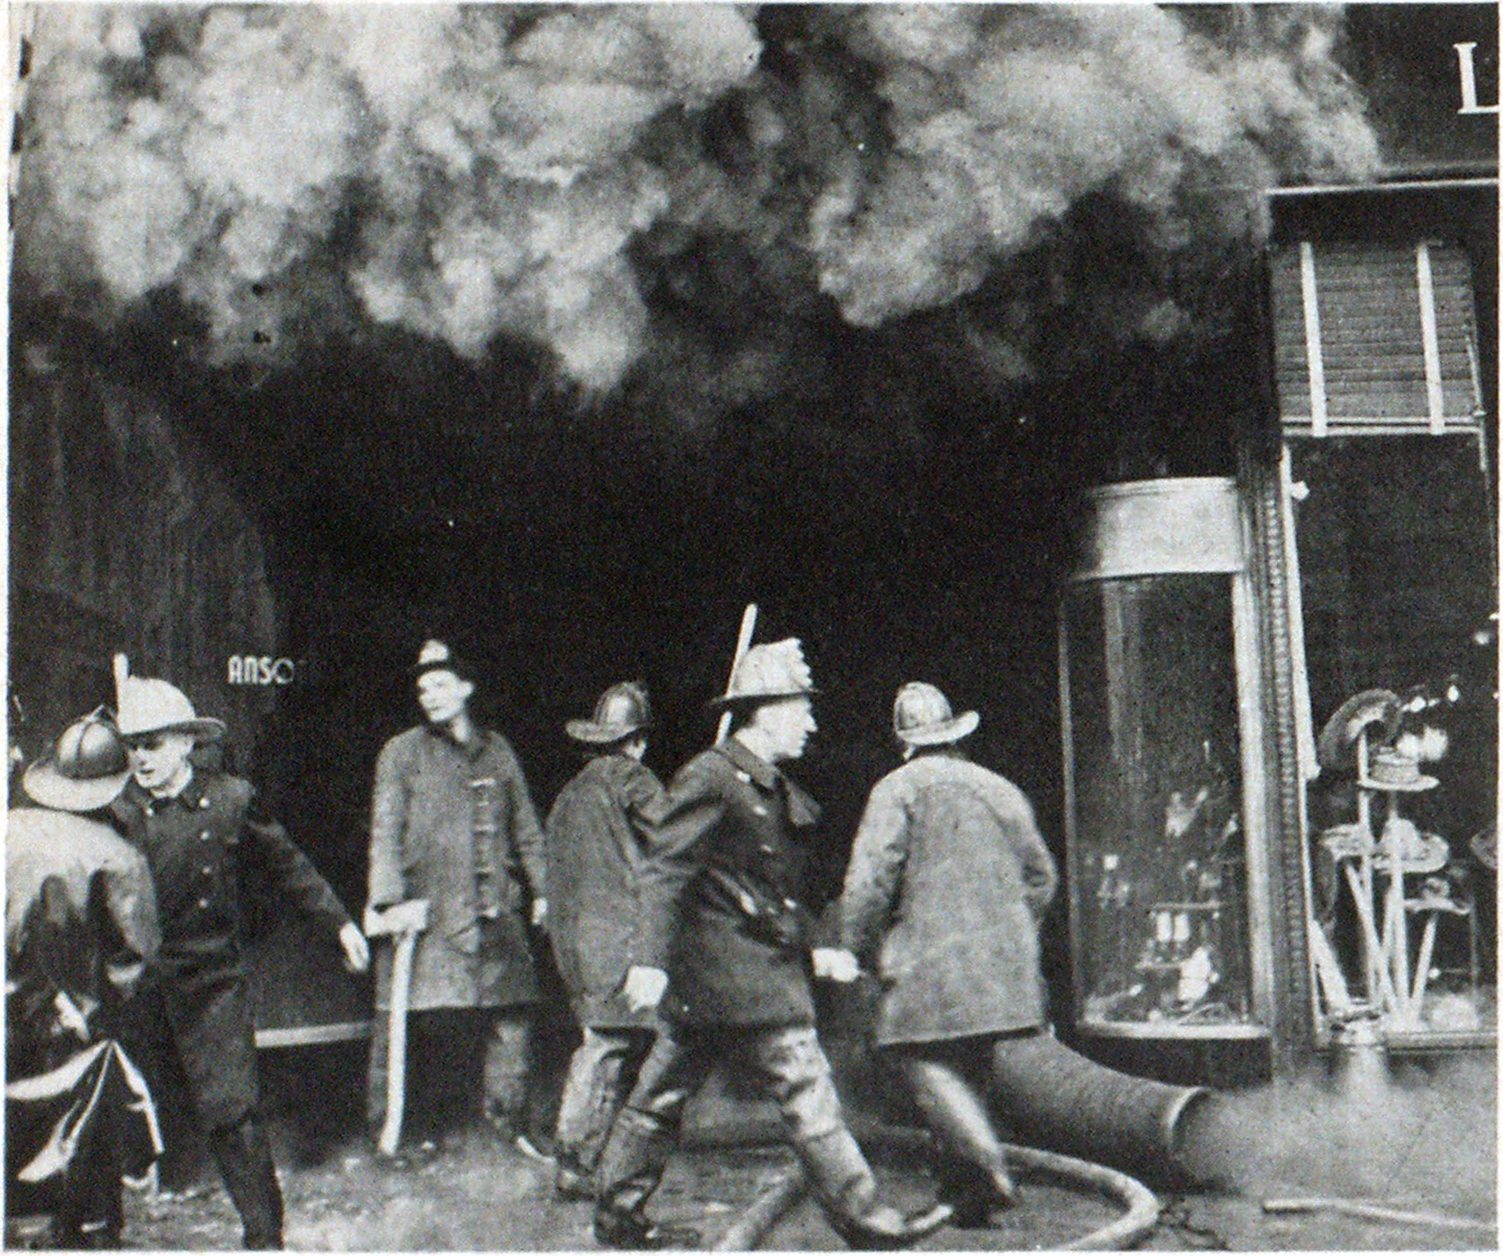 Heavy, hot, toxic smoke from burning cartons and synthetic materials punished Manhattan fire fighters at this 42nd Street shoe store fire until ventilation was accomplished. Note hot smoke rising. Since this fire, the city's fire fighters have been provided with more breathing equipment.